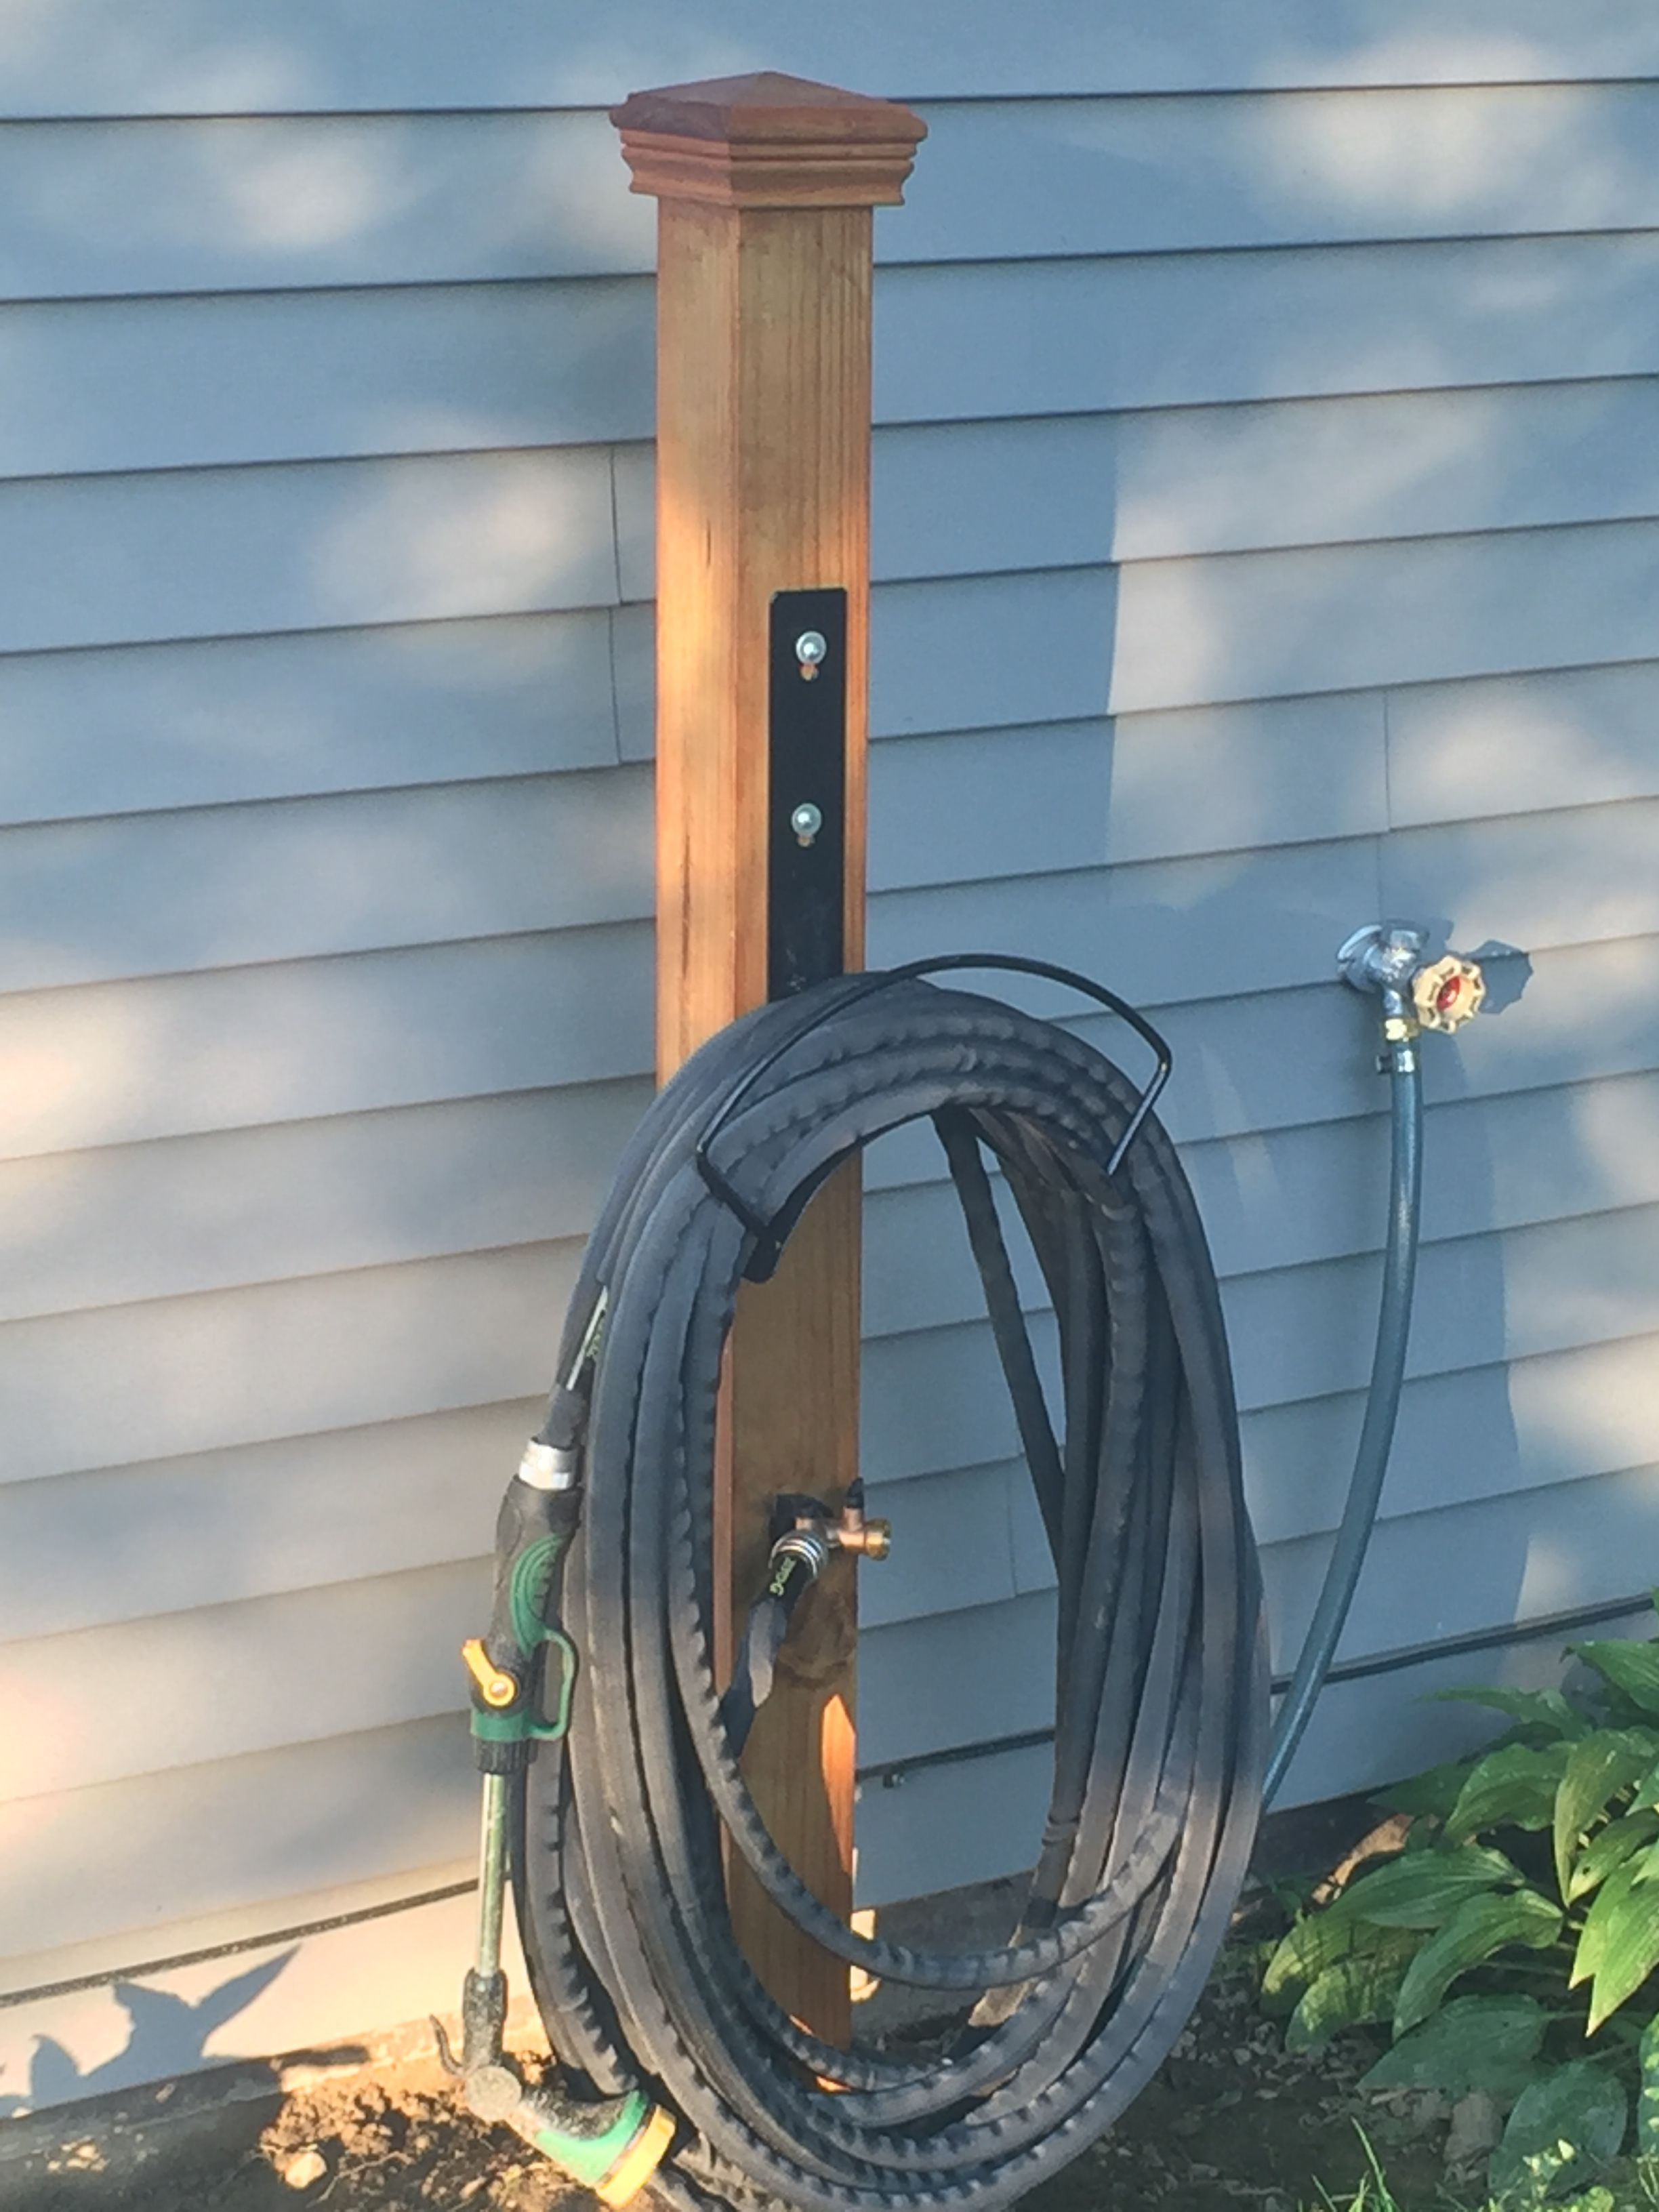 Diy garden hose holder.  Garden hose storage, Garden hose holder